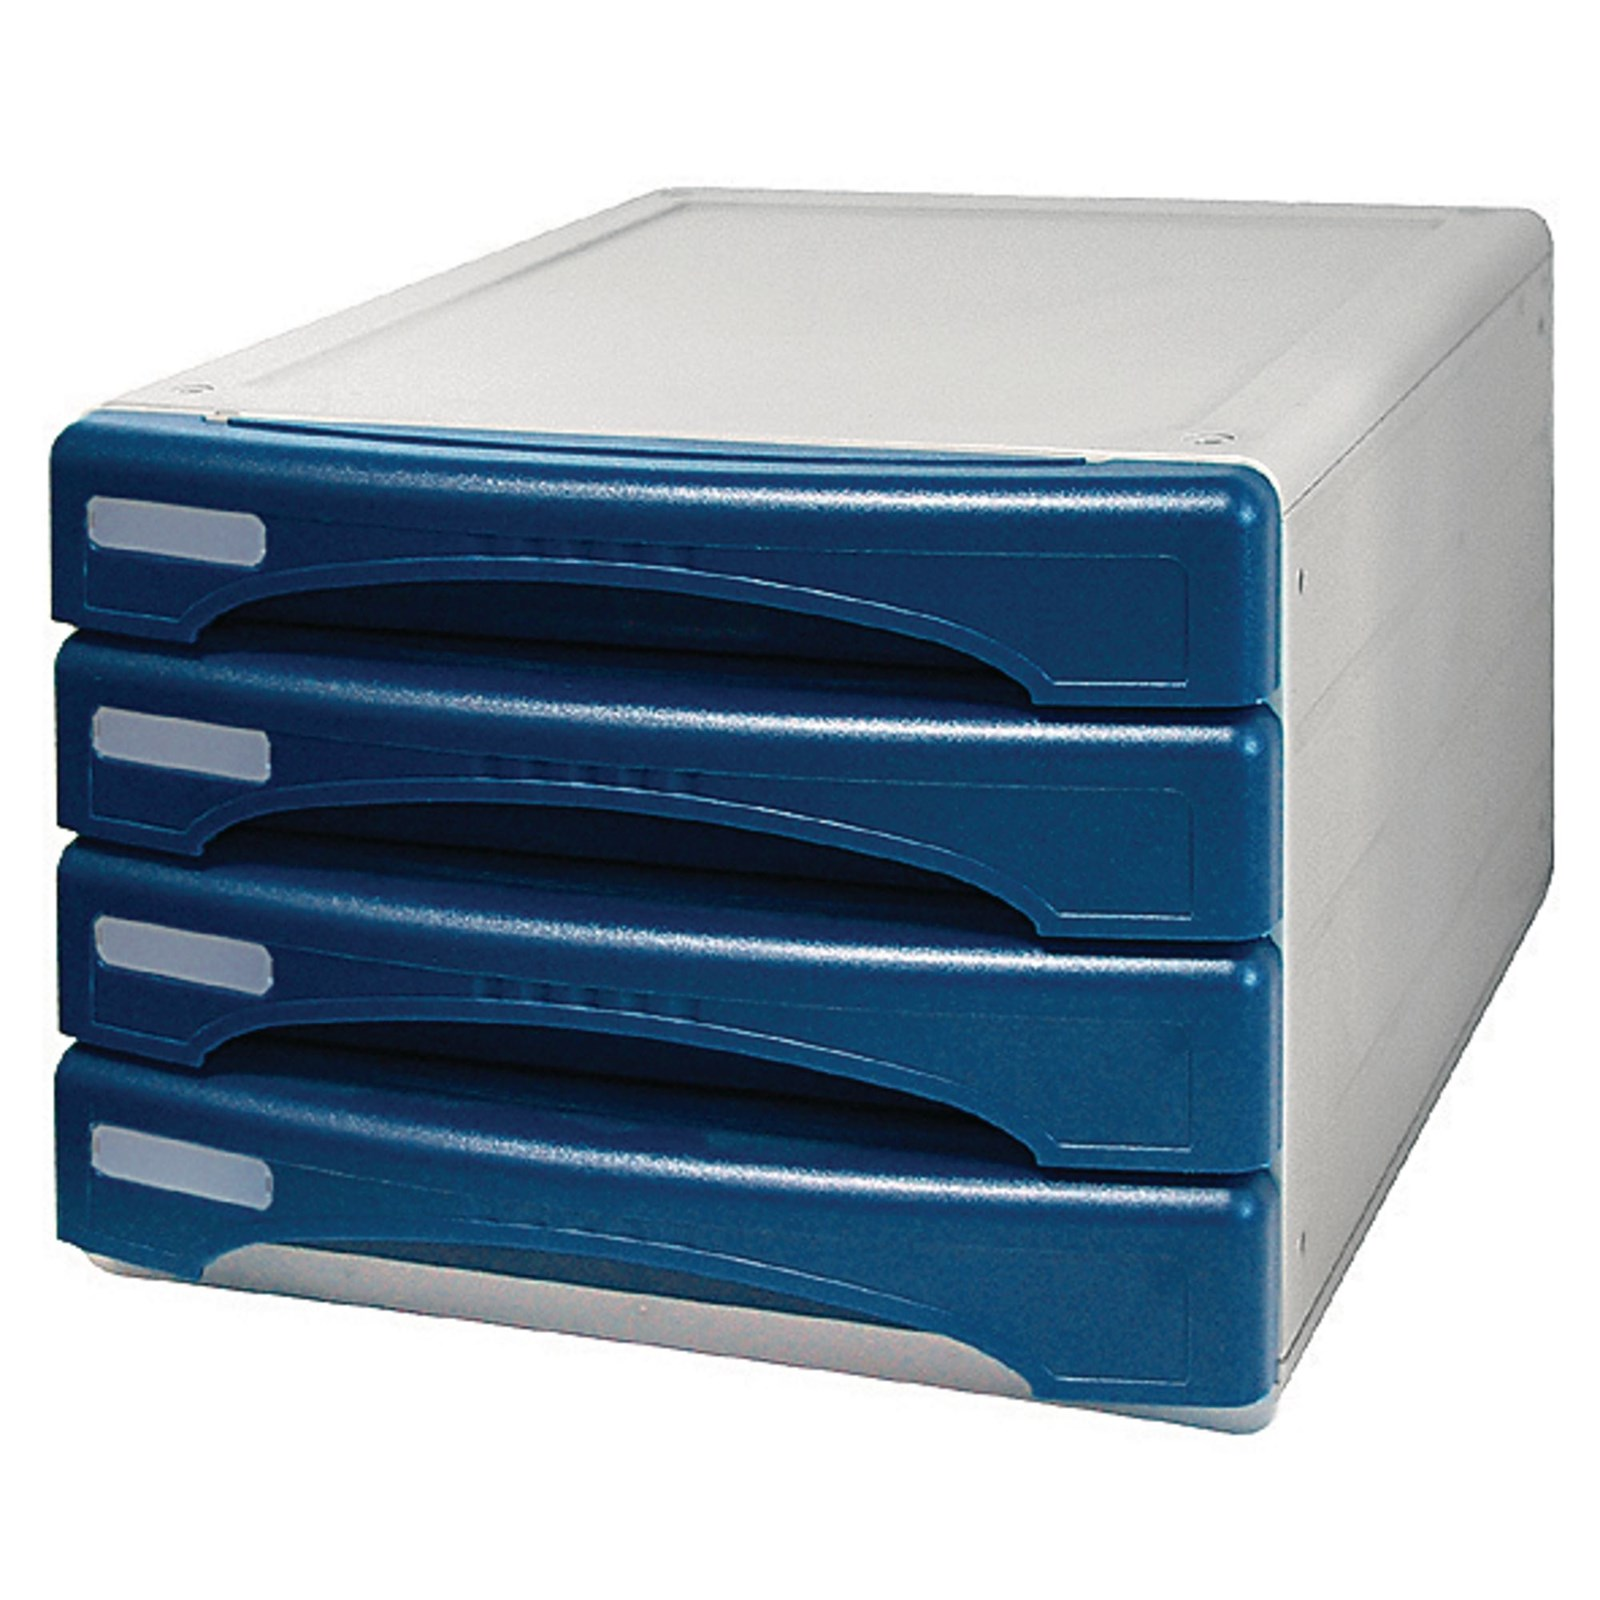 Closed Units - 4 Drawers